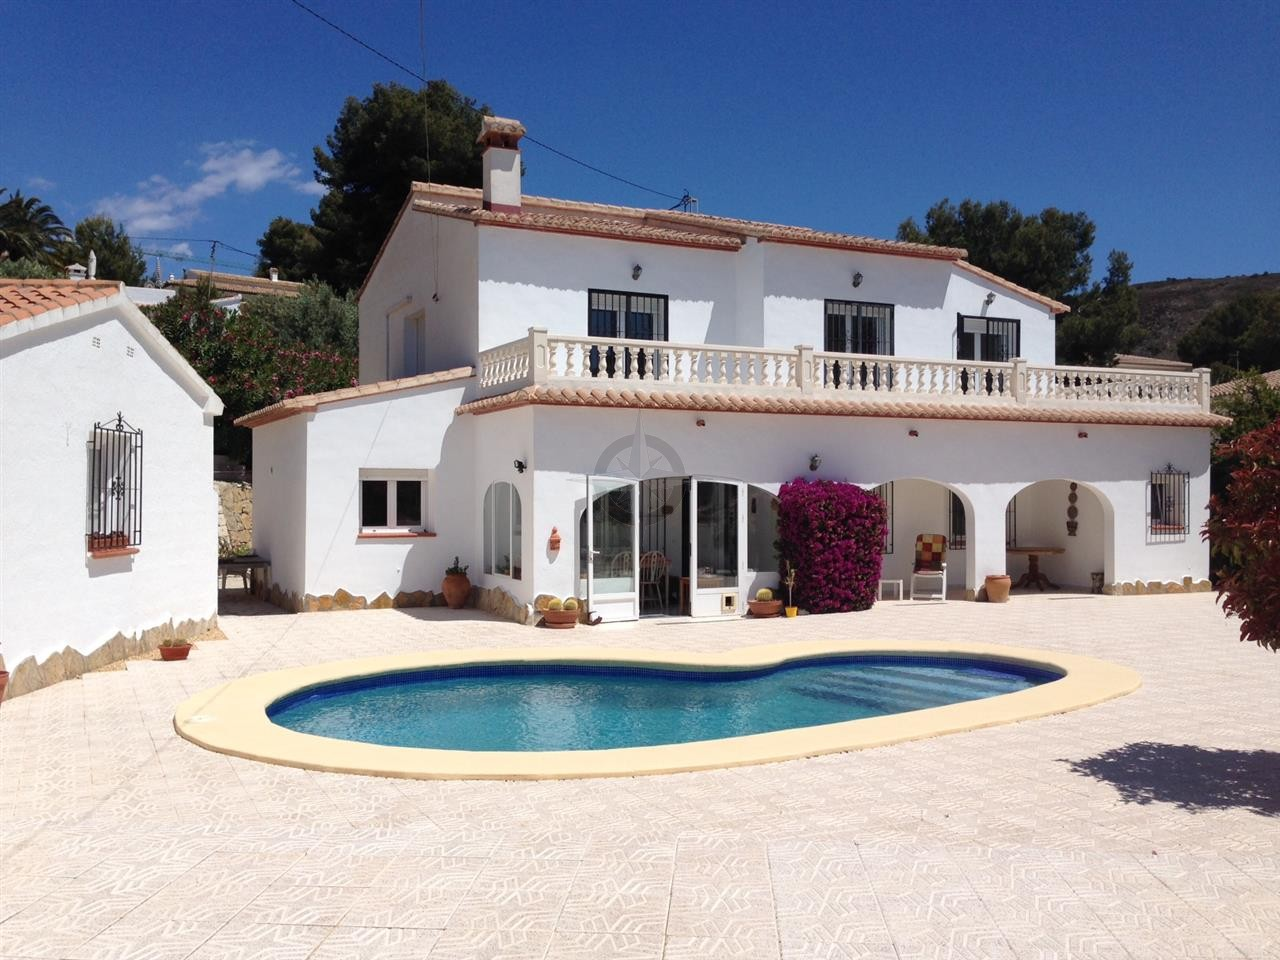 Villa In Moraira For Sale 5 Bedrooms 4 Bathrooms